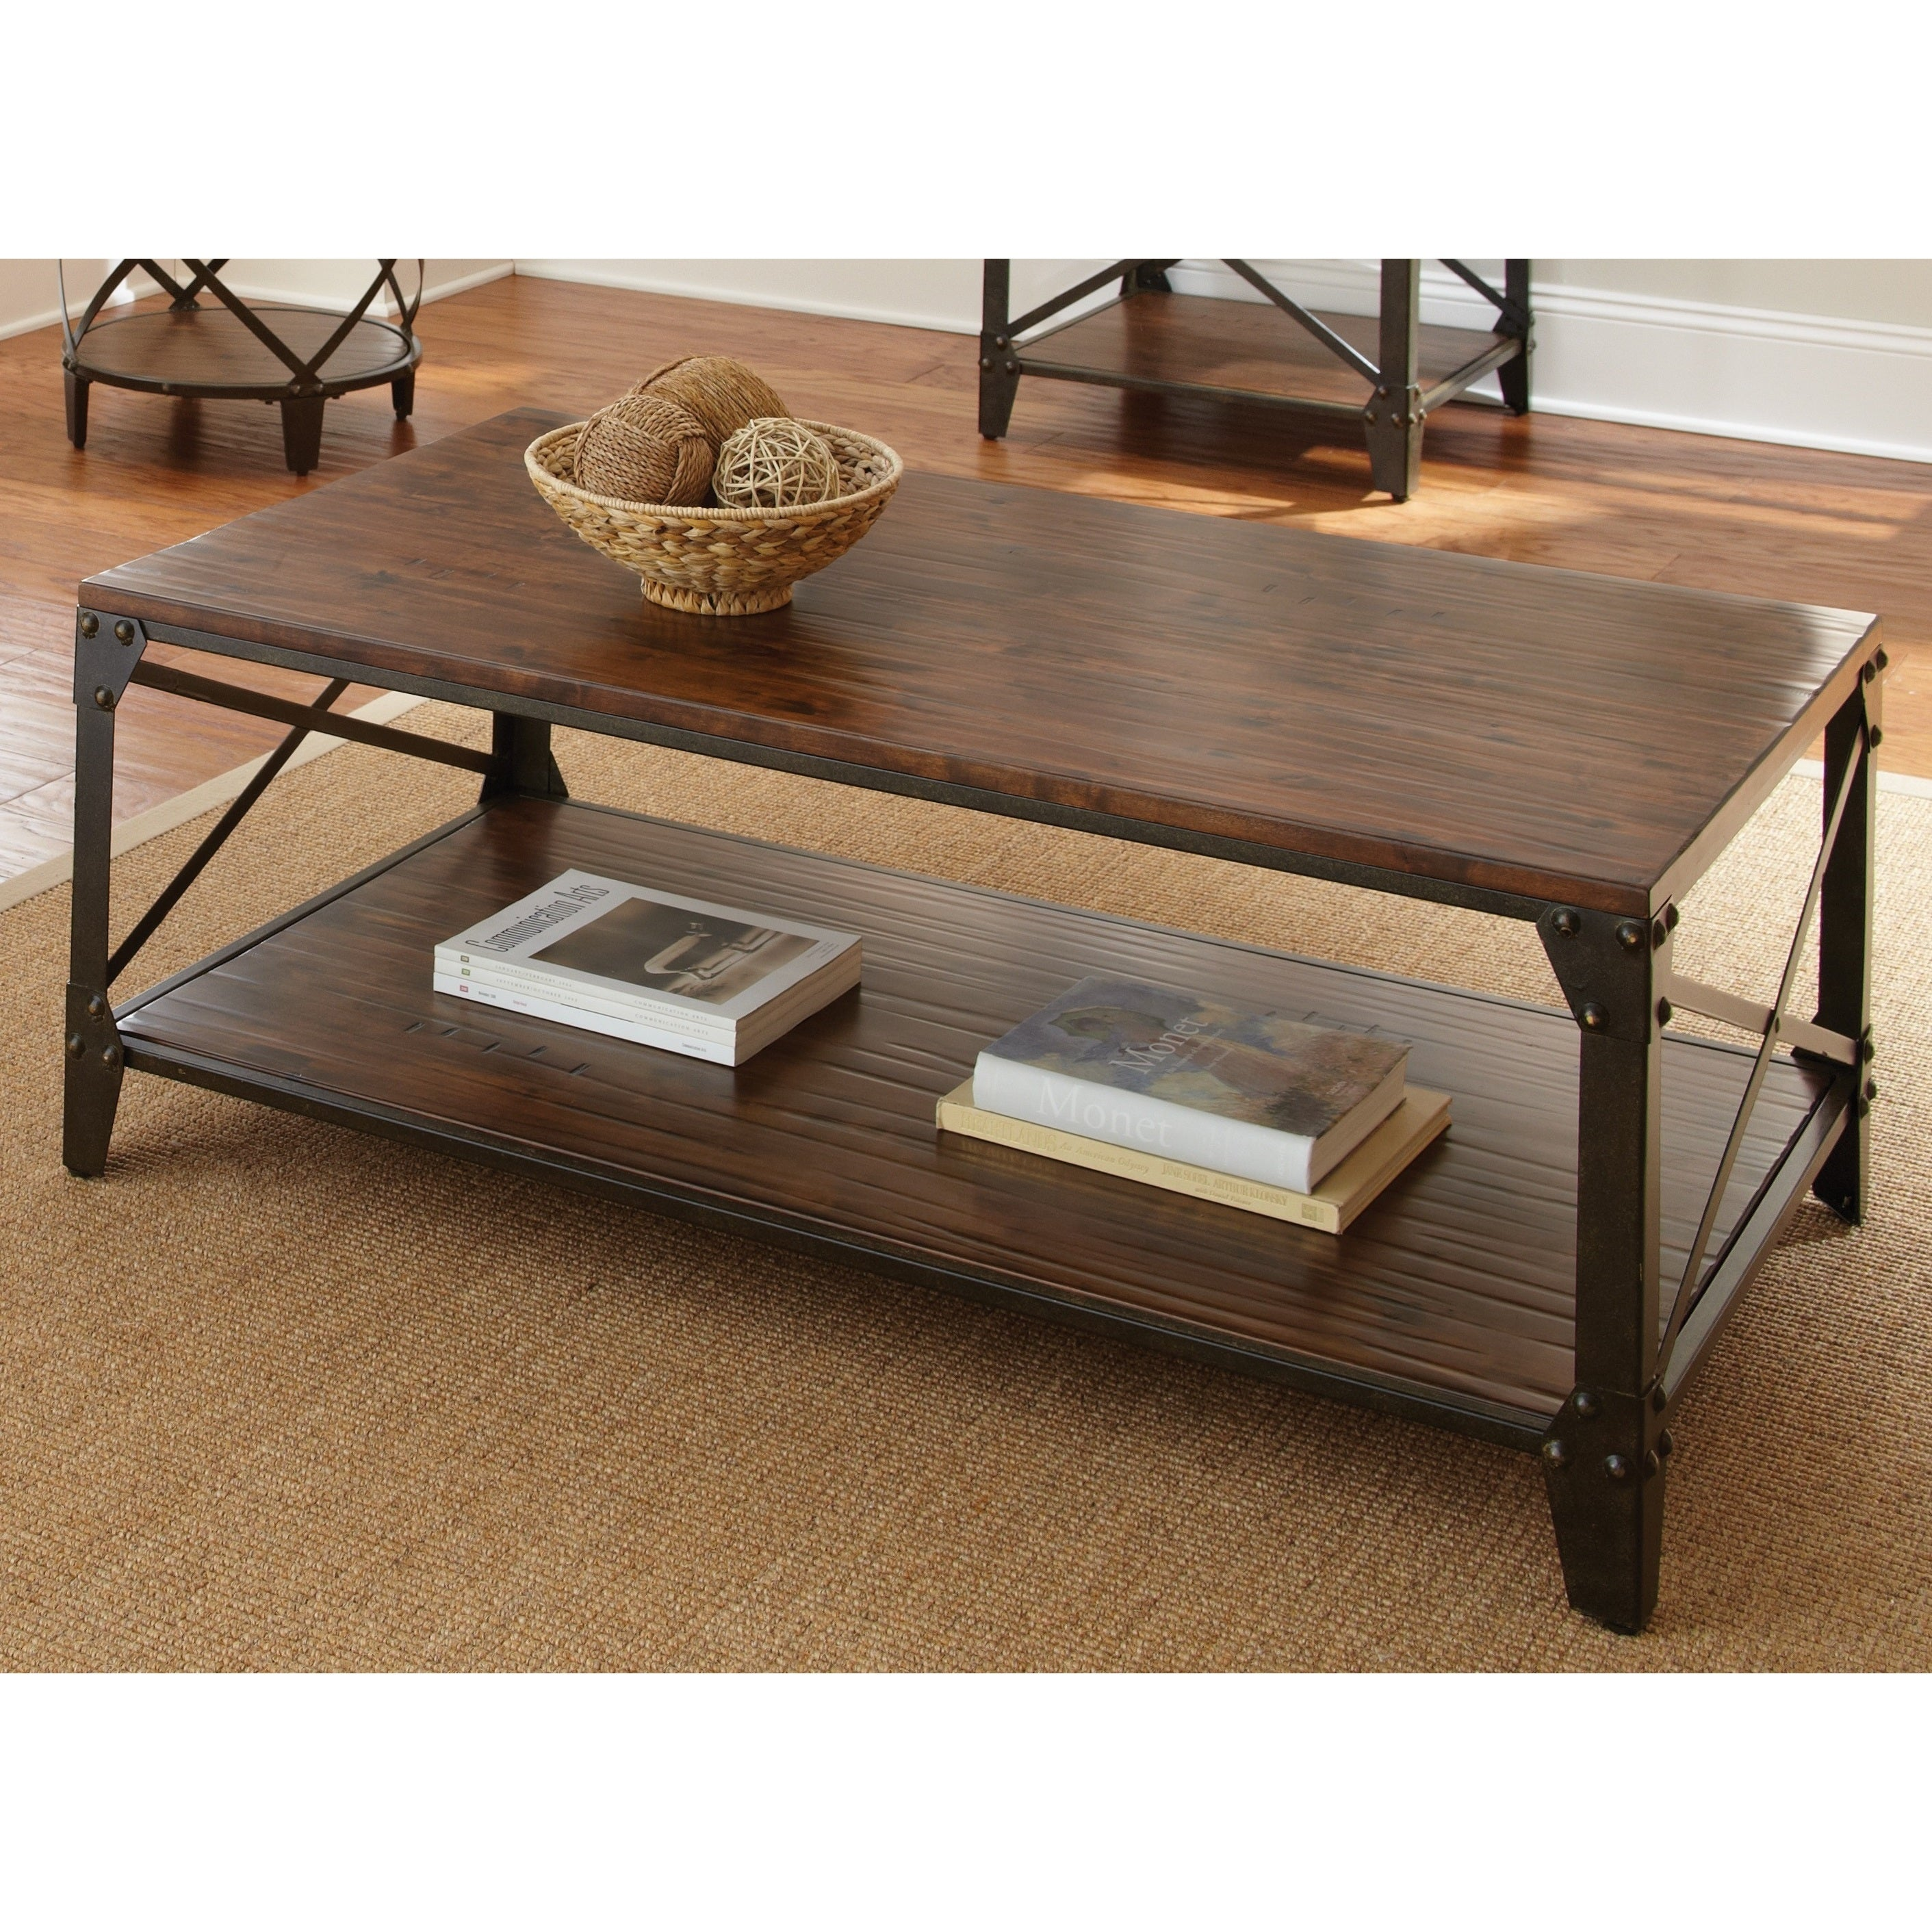 windham solid birch and iron rustic coffee table by greyson living  freeshipping today  overstockcom  . windham solid birch and iron rustic coffee table by greyson living